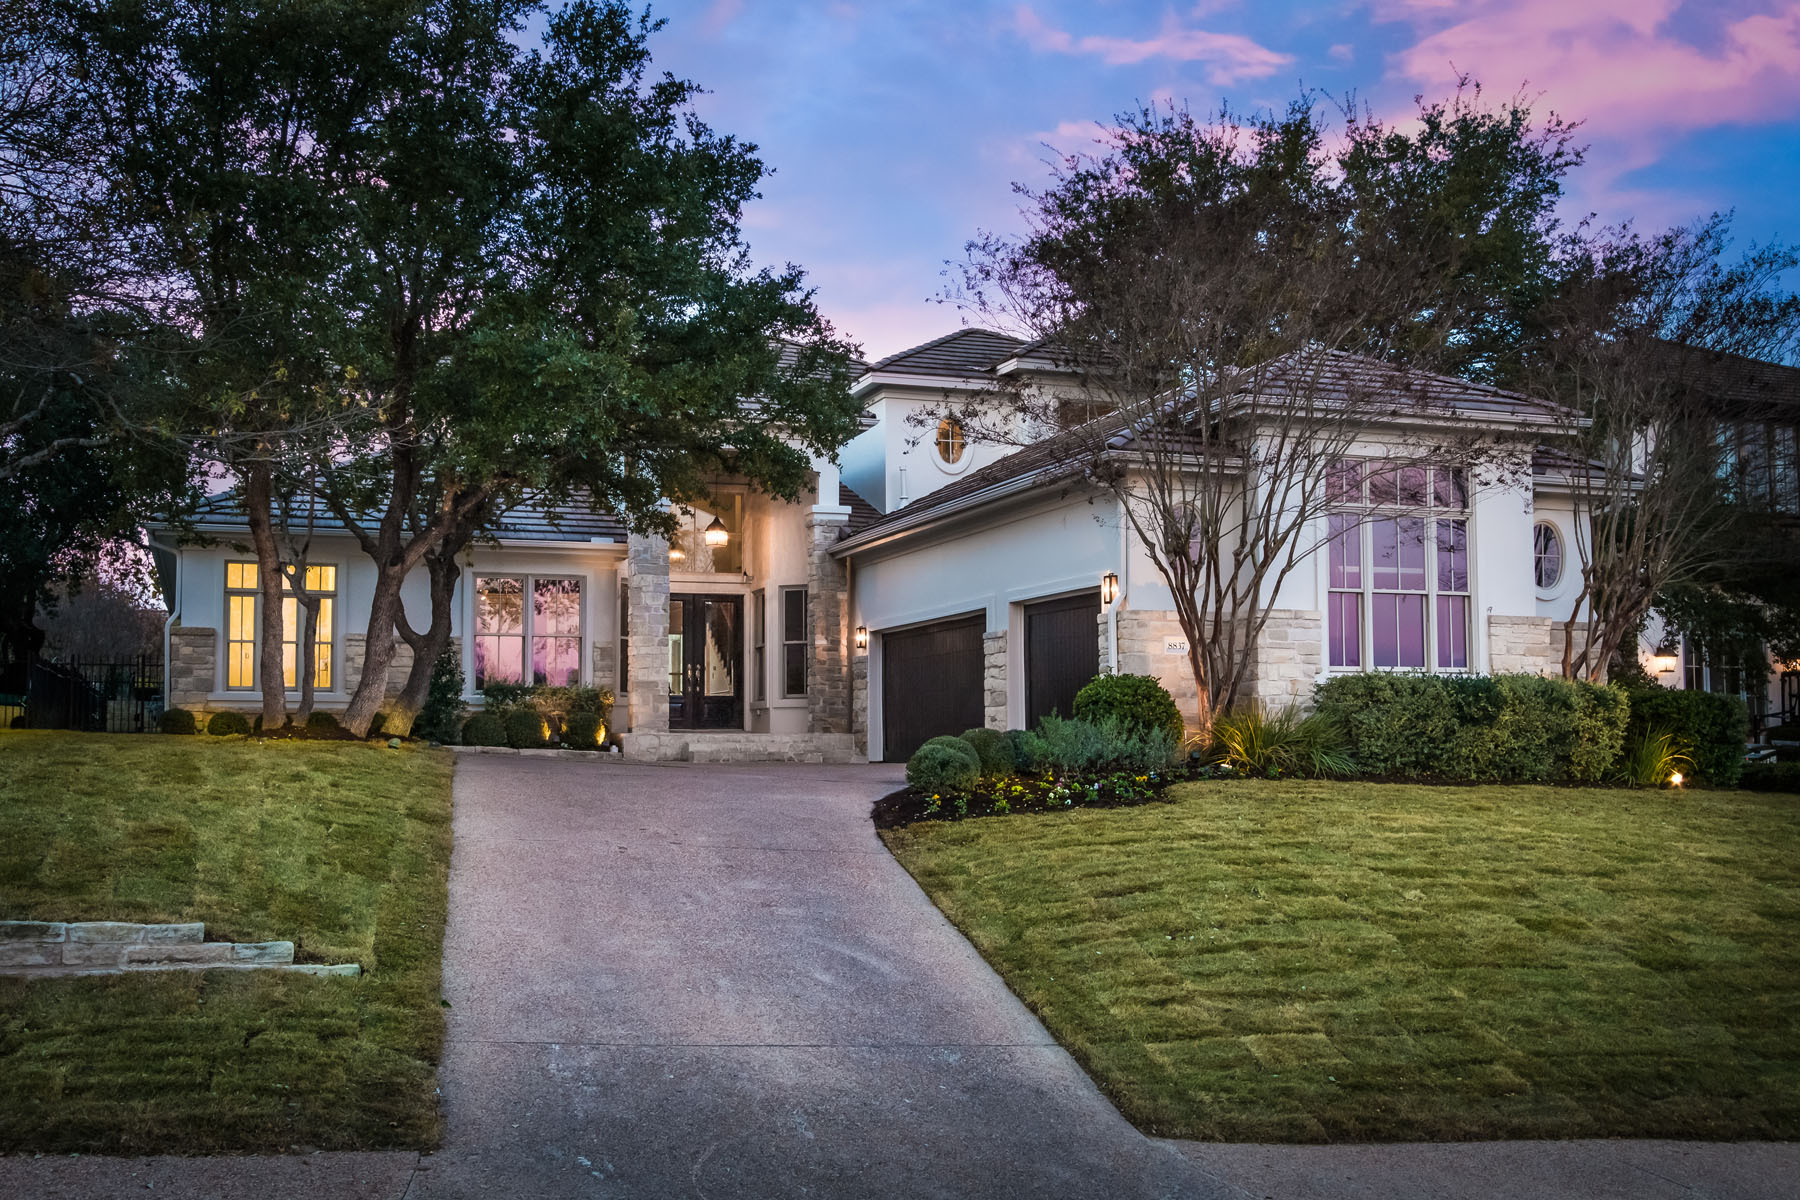 Single Family Home for Sale at Beautifully Remodeled with Clean Lines 8837 Chalk Knoll Dr Barton Creek, Austin, Texas, 78735 United States